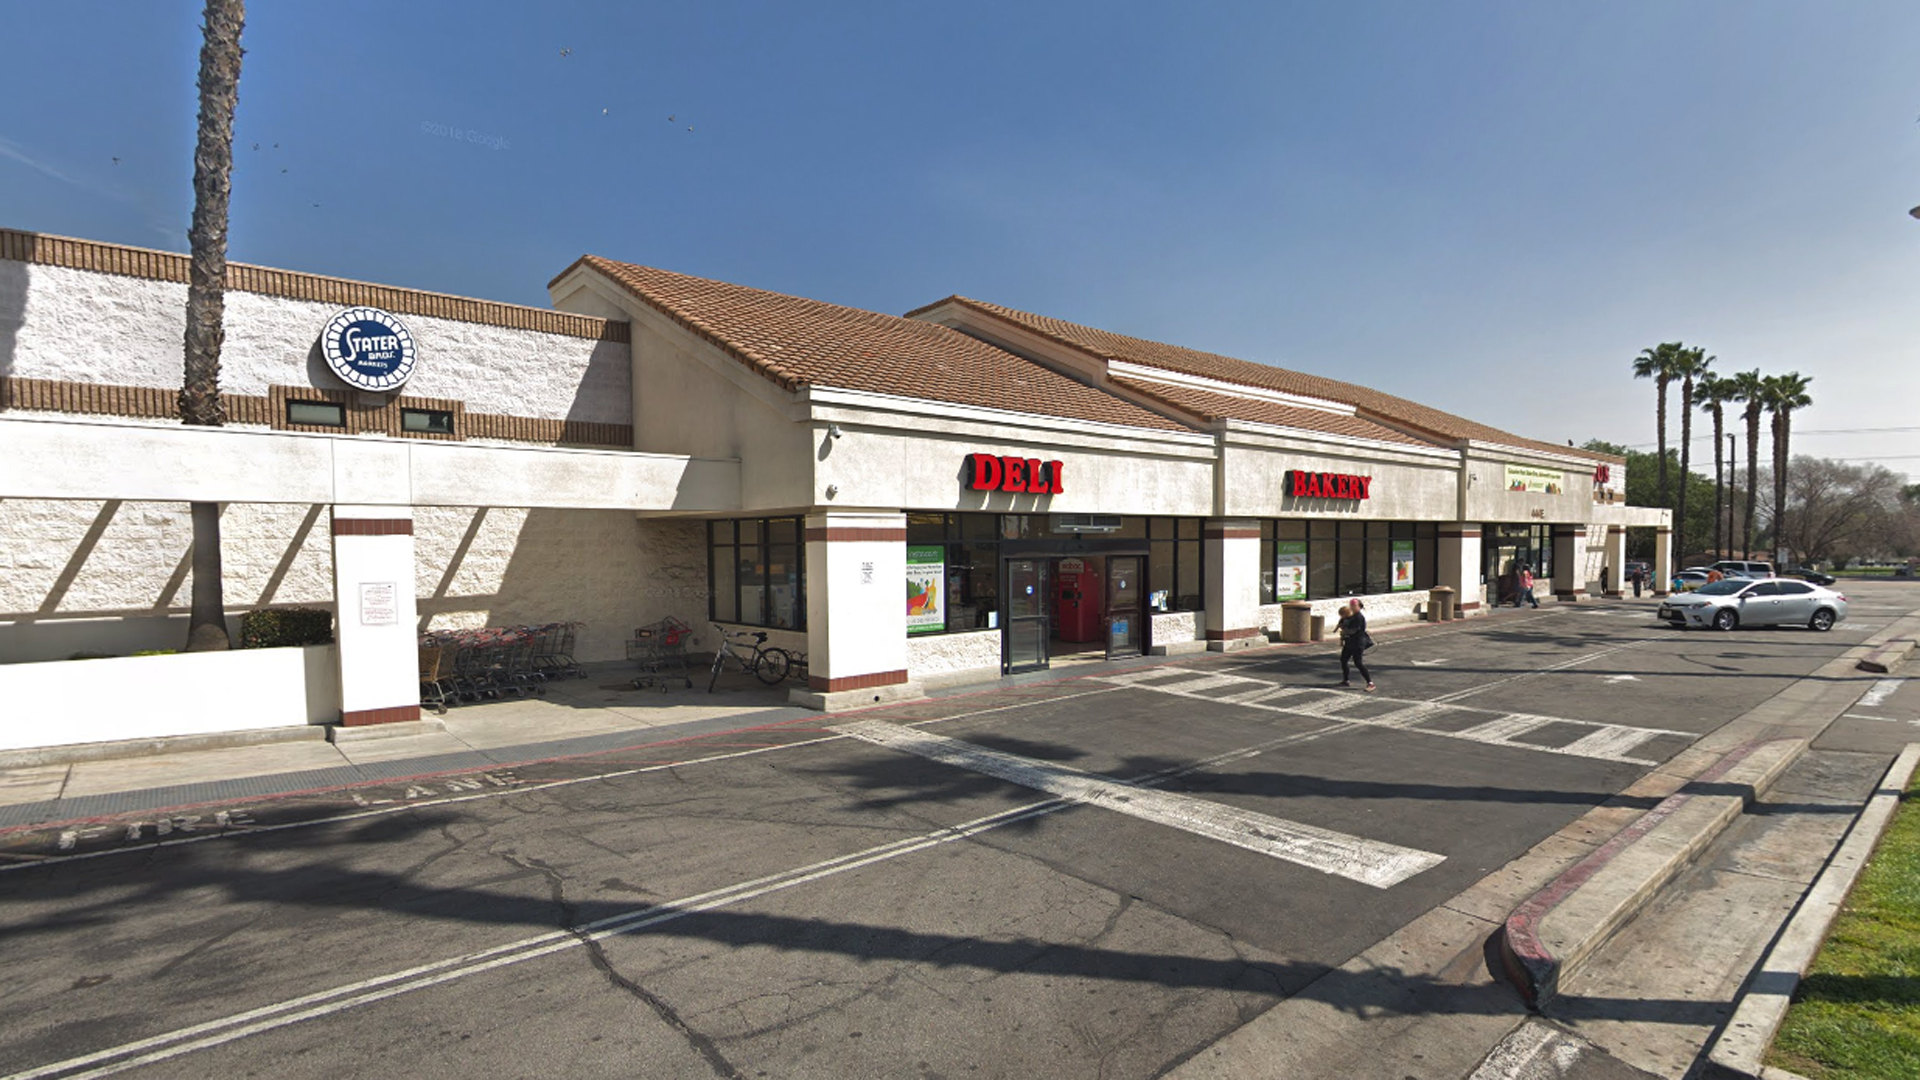 Stater Bros., 444 E. Baseline Street in San Bernardino, as viewed in a Google Street View image.